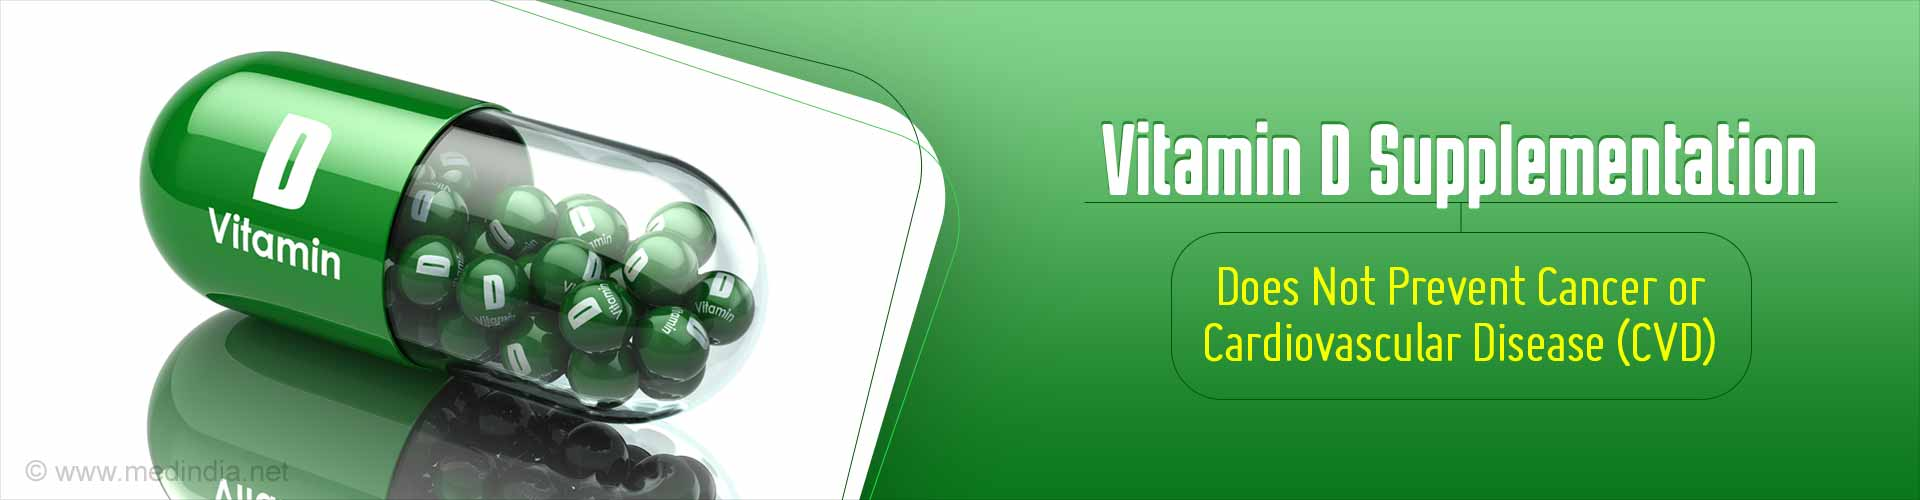 Vitamin D Does Not Prevent Cancer or Cardiovascular Disease